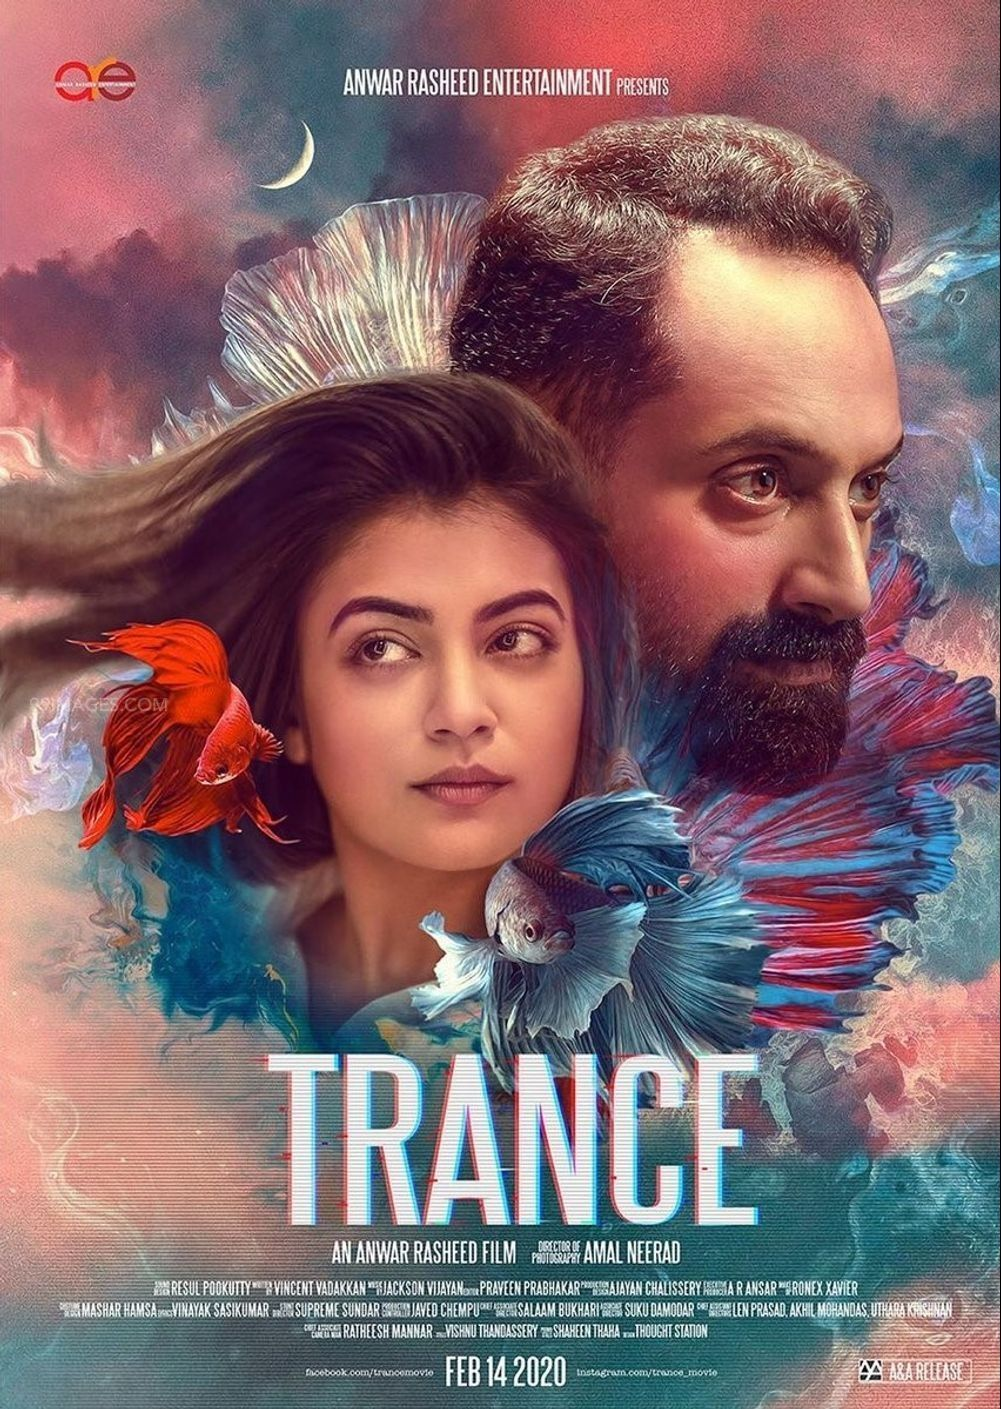 Trance Movie Latest HD Photos, Posters & Wallpapers Download (1080p, 4K) (315708) - Trance